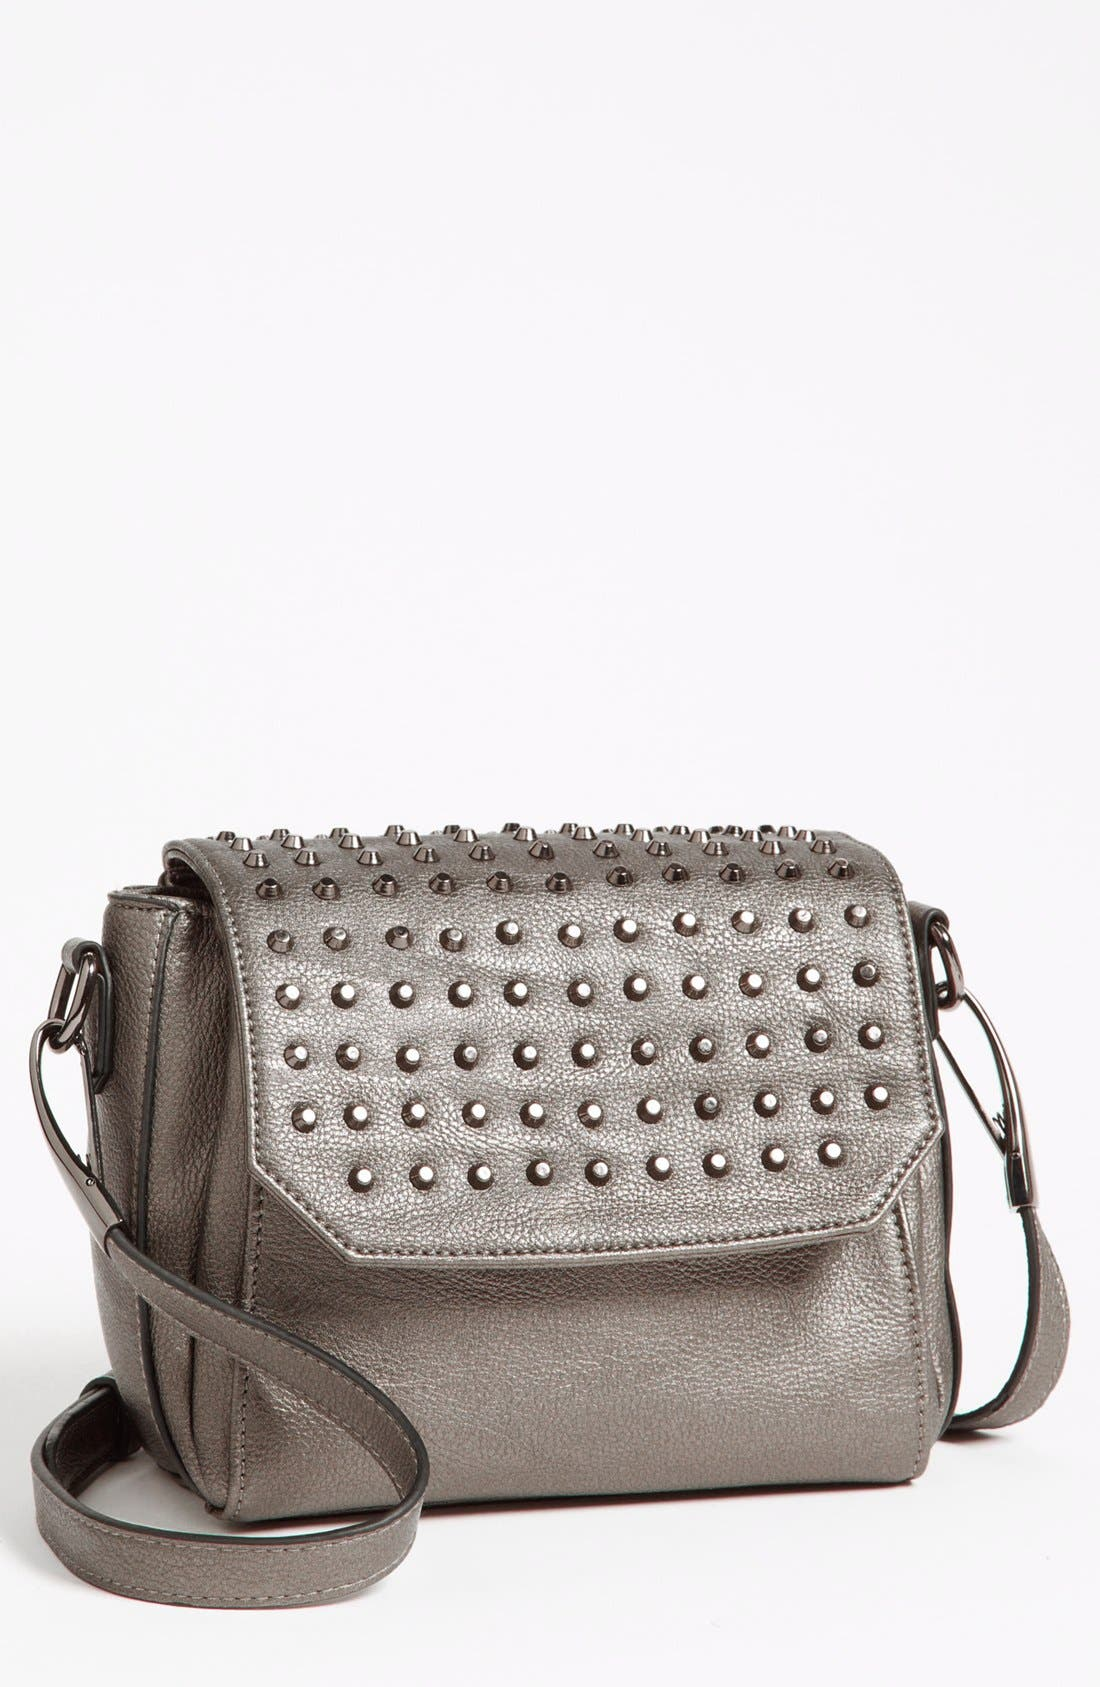 Alternate Image 1 Selected - POVERTY FLATS by rian 'small' faux leather crossbody bag